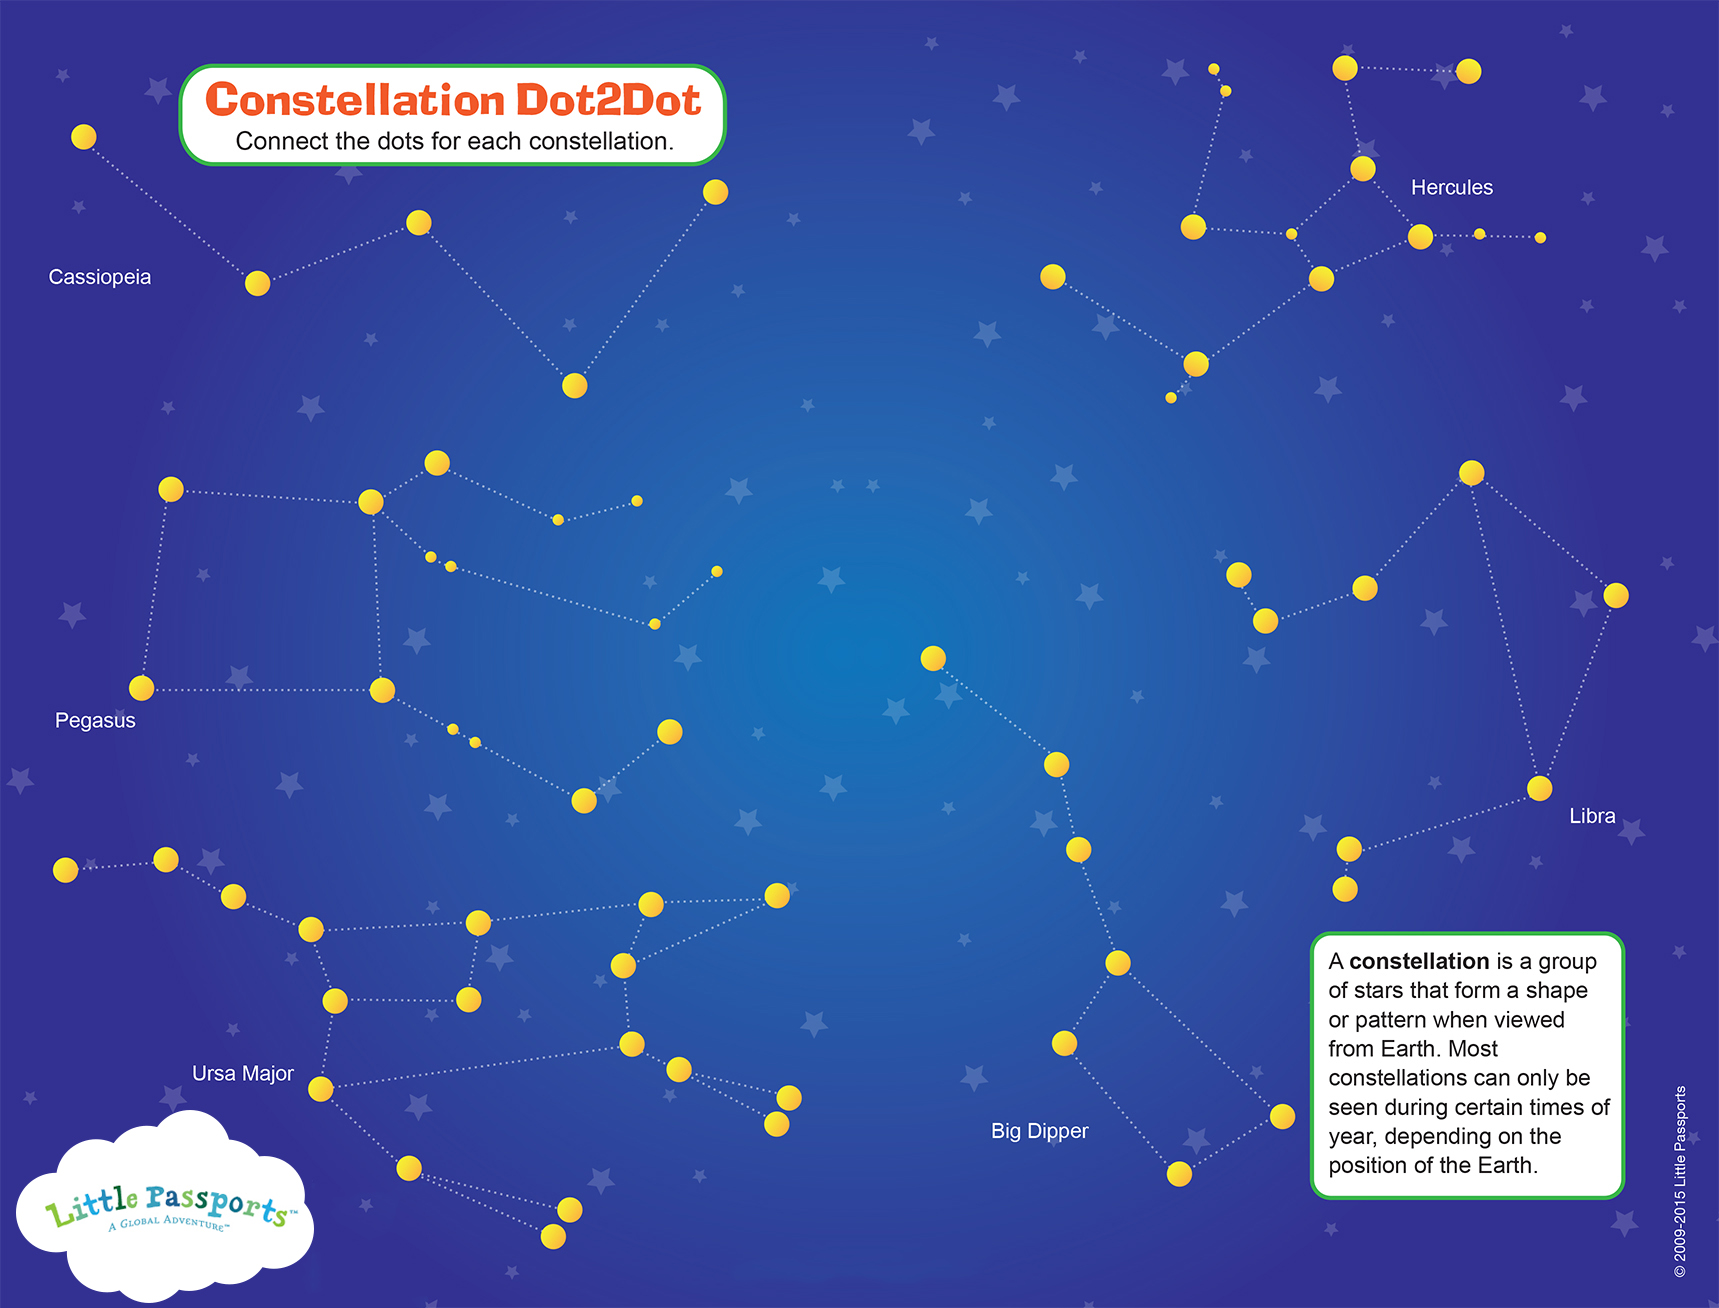 Constellation connect the dots activity printable. Fun way to learn!